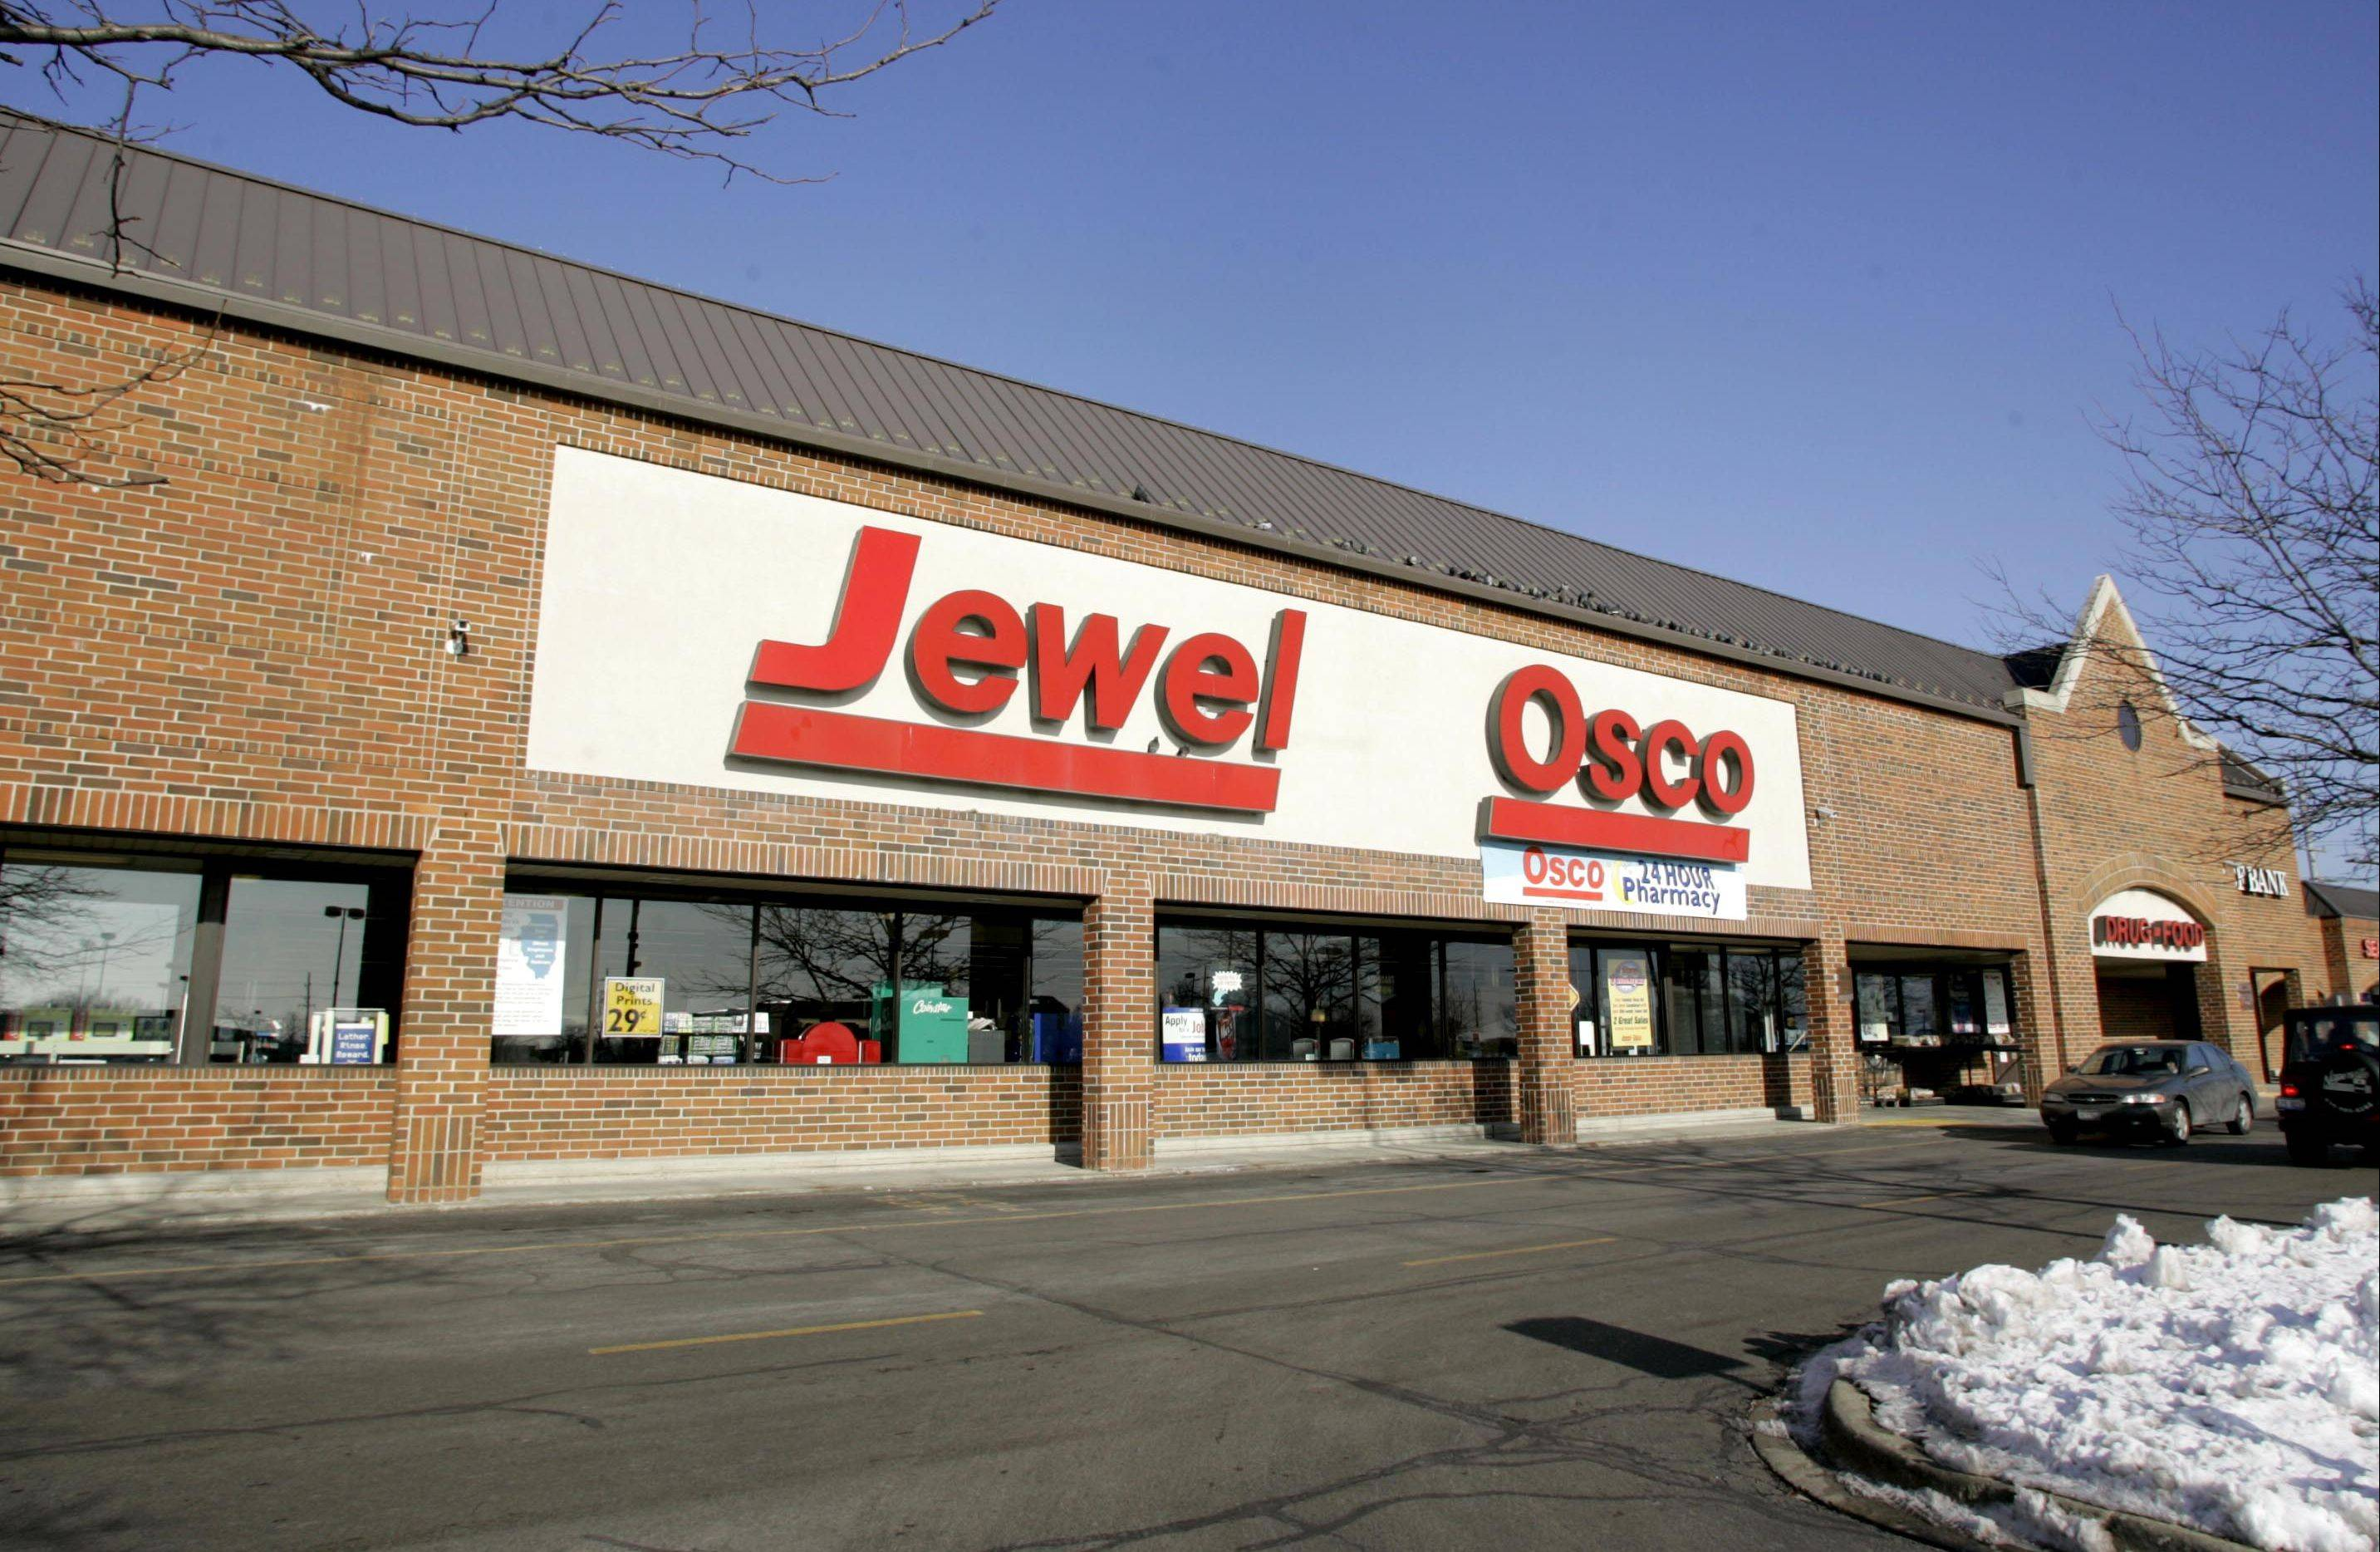 Jewel-Oscos in Wheaton and other suburbs have lowered prices to try to compete with Target and Walmart.